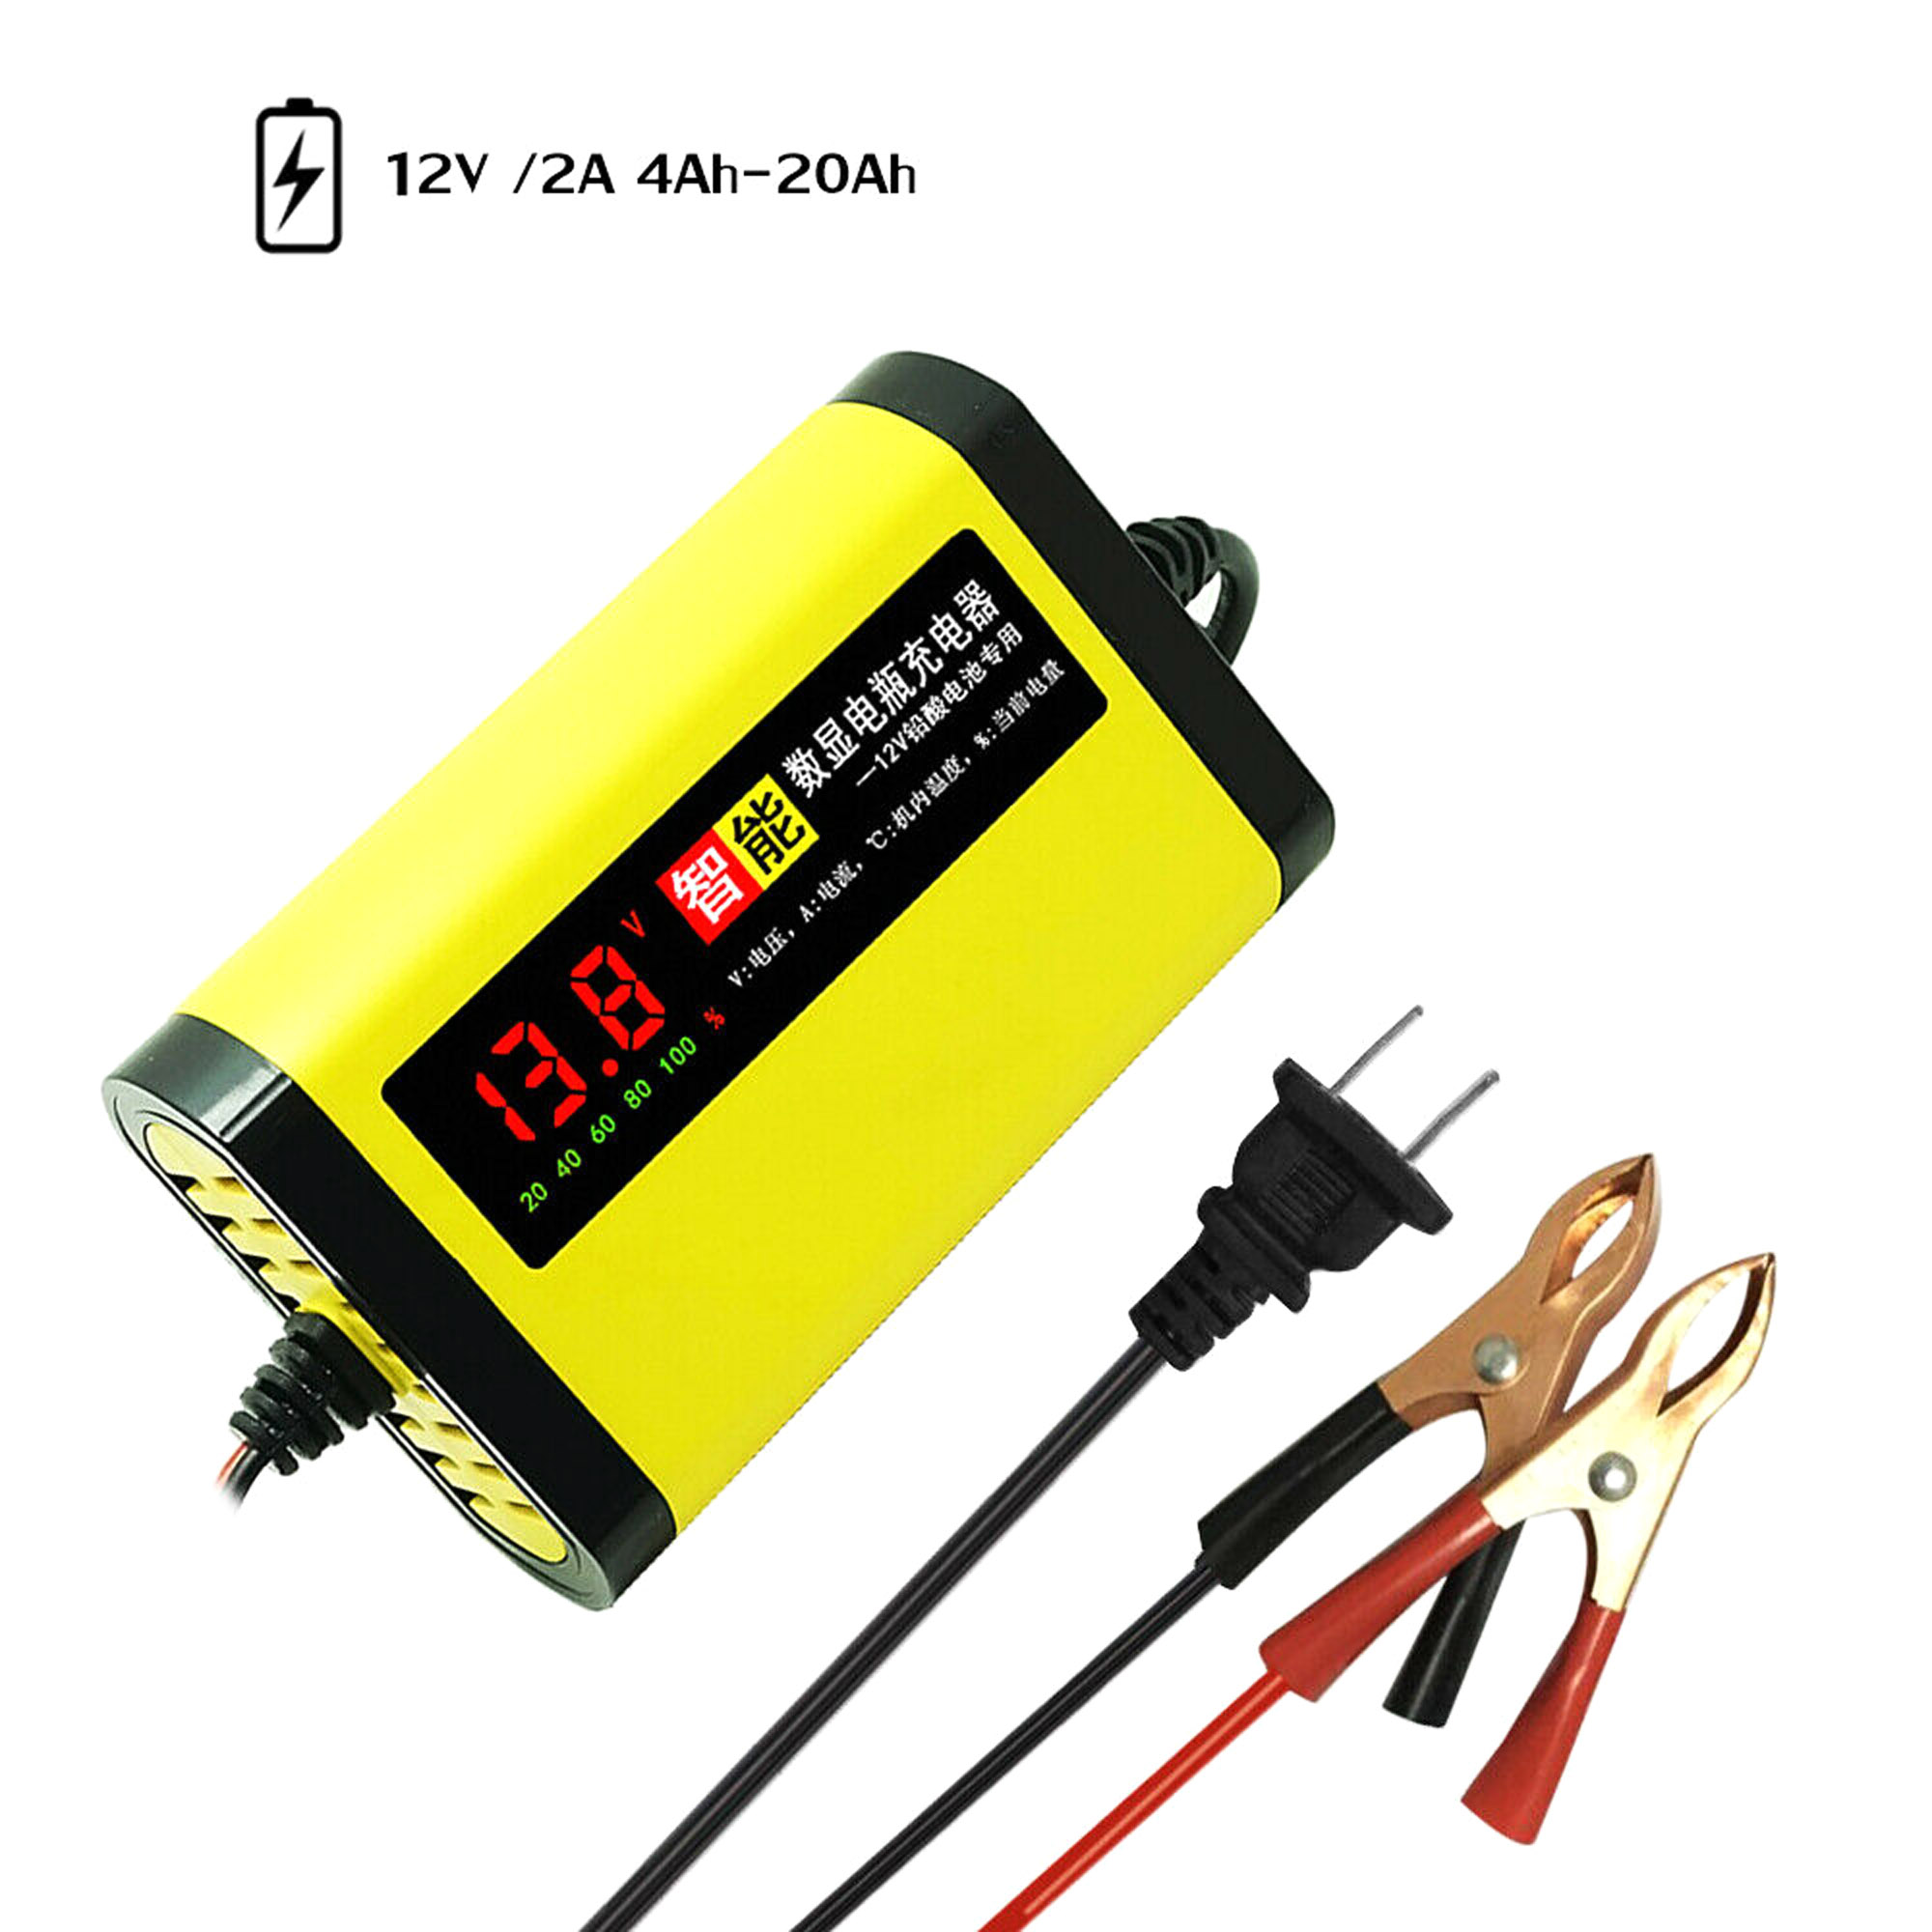 CarS Motorcycle Battery Charger 12V 2A Full Automatic 3Stages Lead Acid AGM GEL